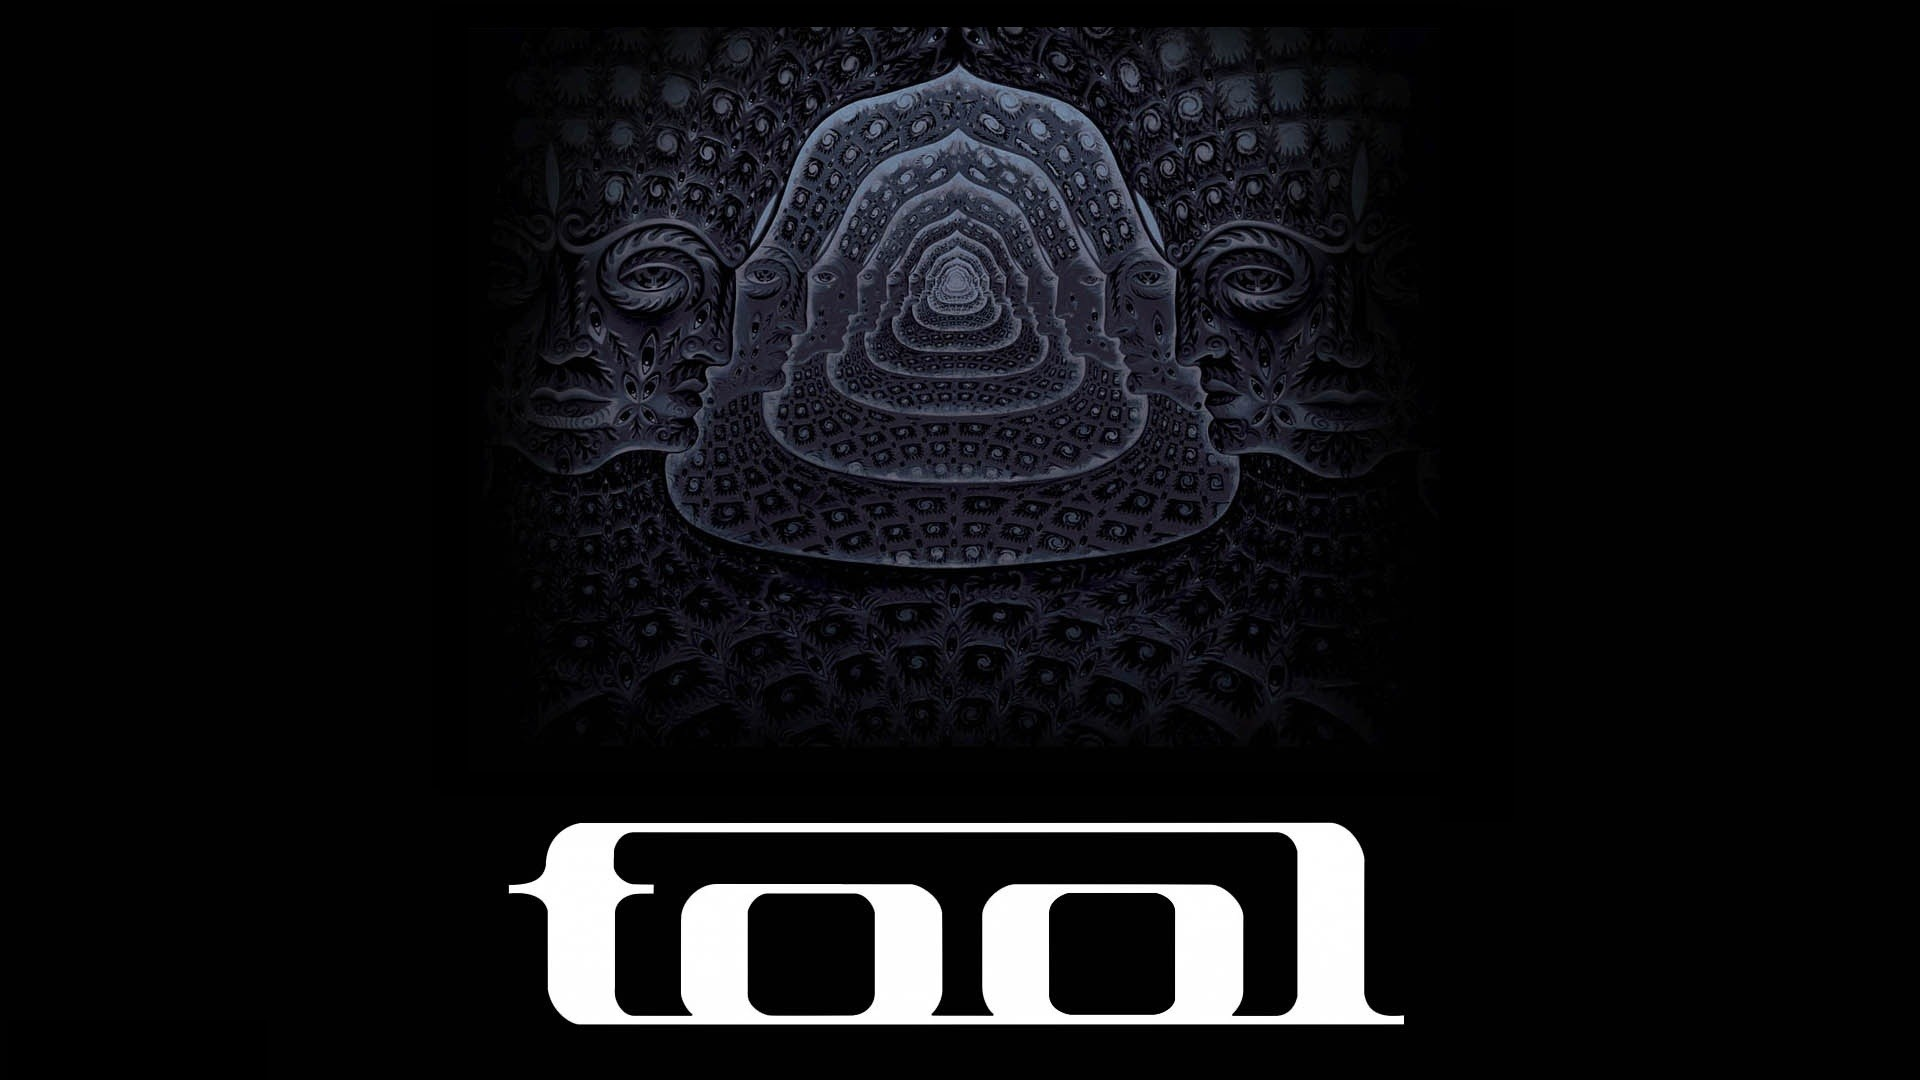 Wallpaper Tool 10000 Days Hd Pictures